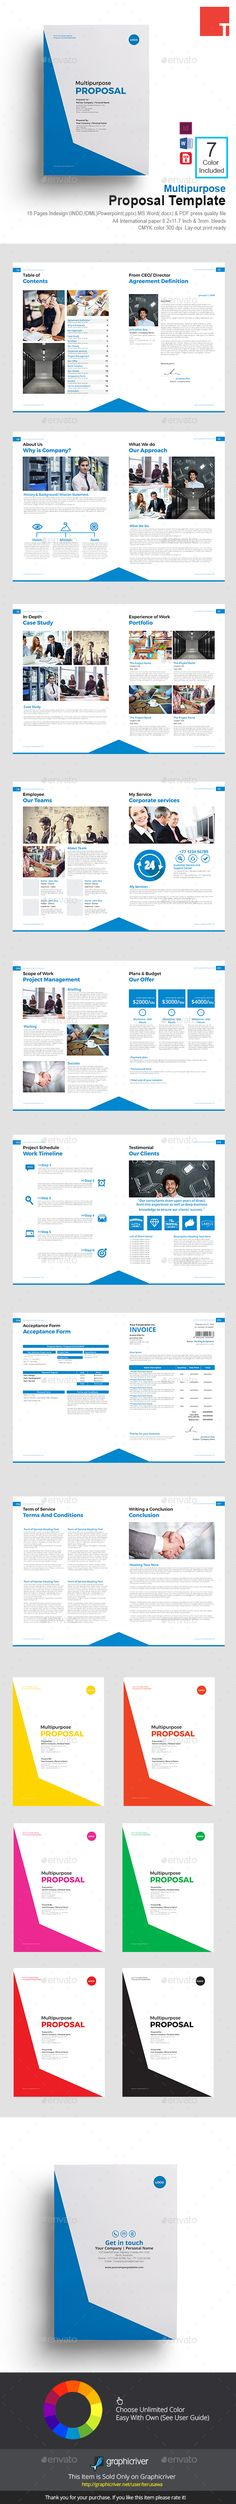 Cloud Sever Proposal Template Template, Proposals and Customize - advertising proposal template